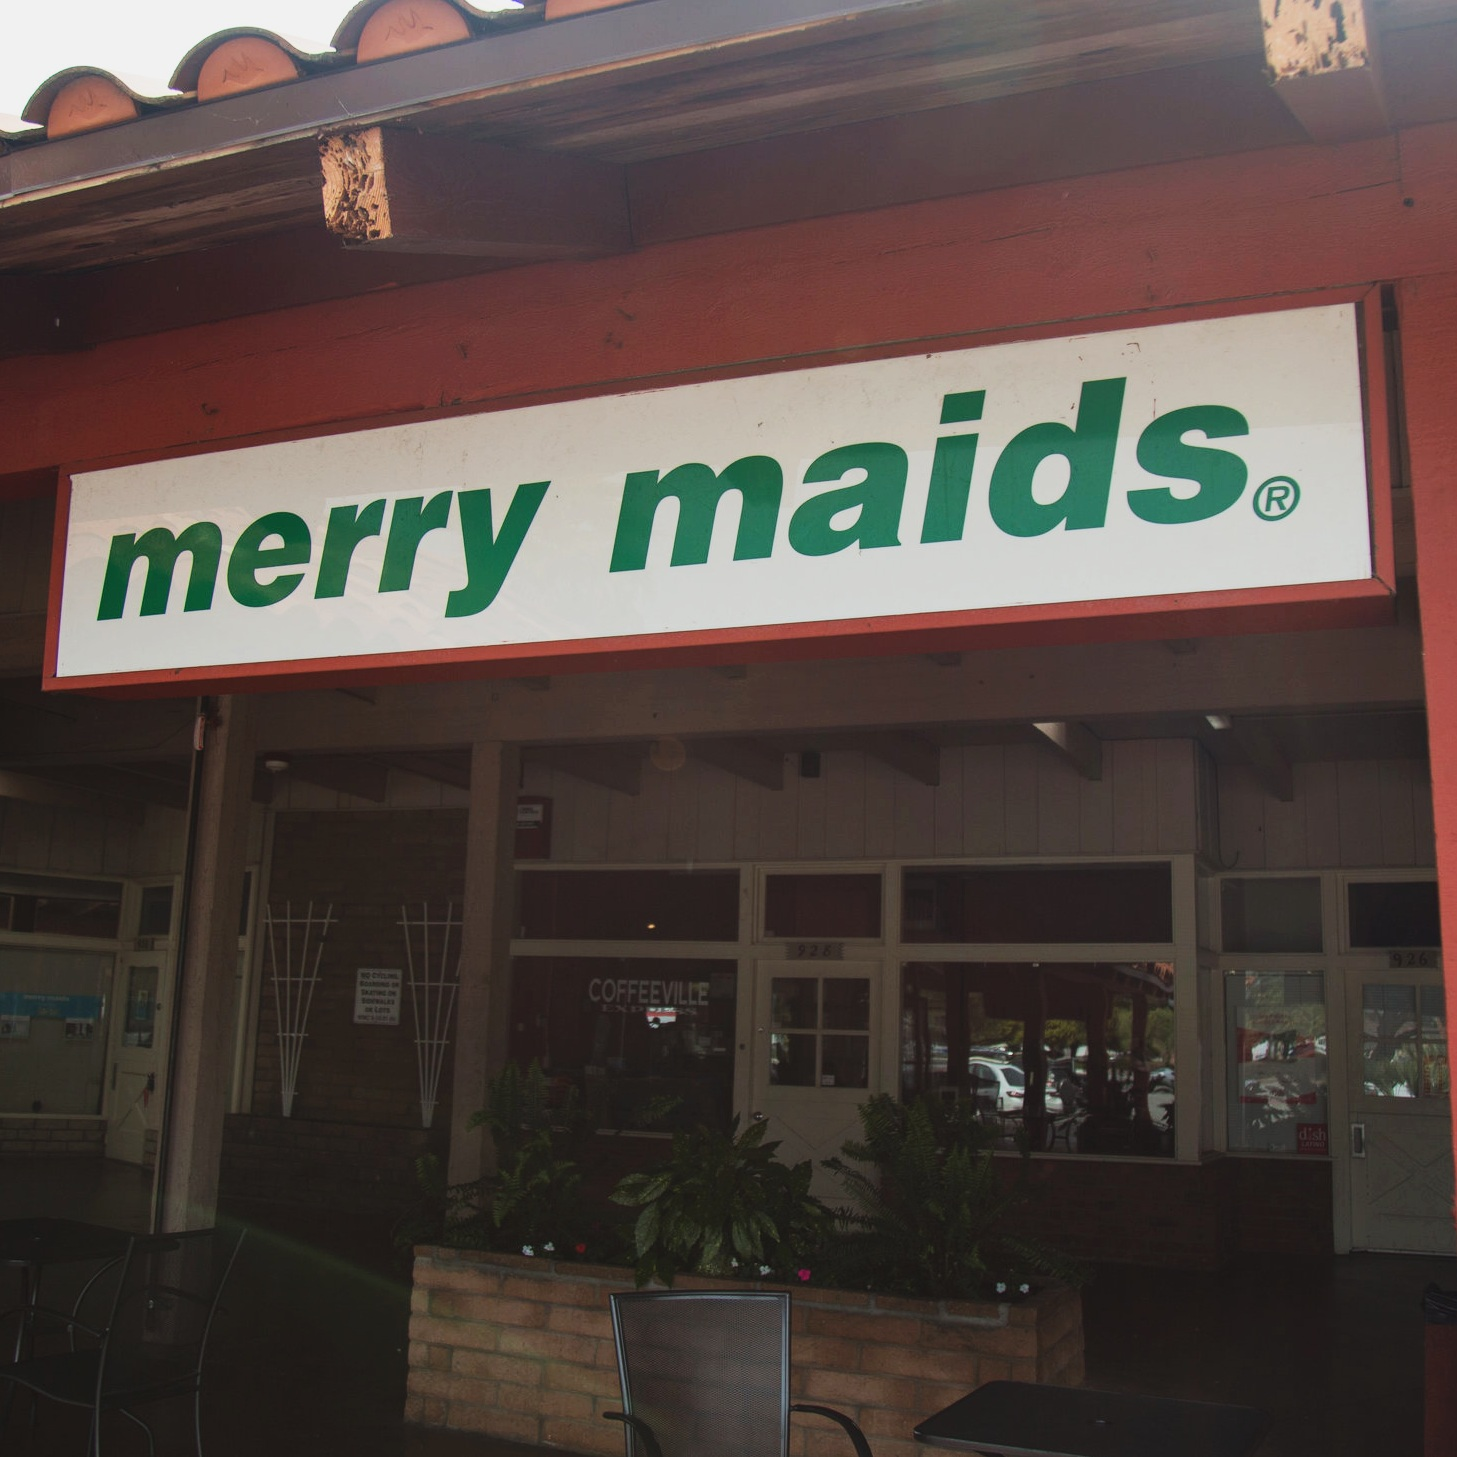 Merry Maids   930 East Lake Ave. Watsonville, CA 95076  (831)816-2660   Visit website  HERE